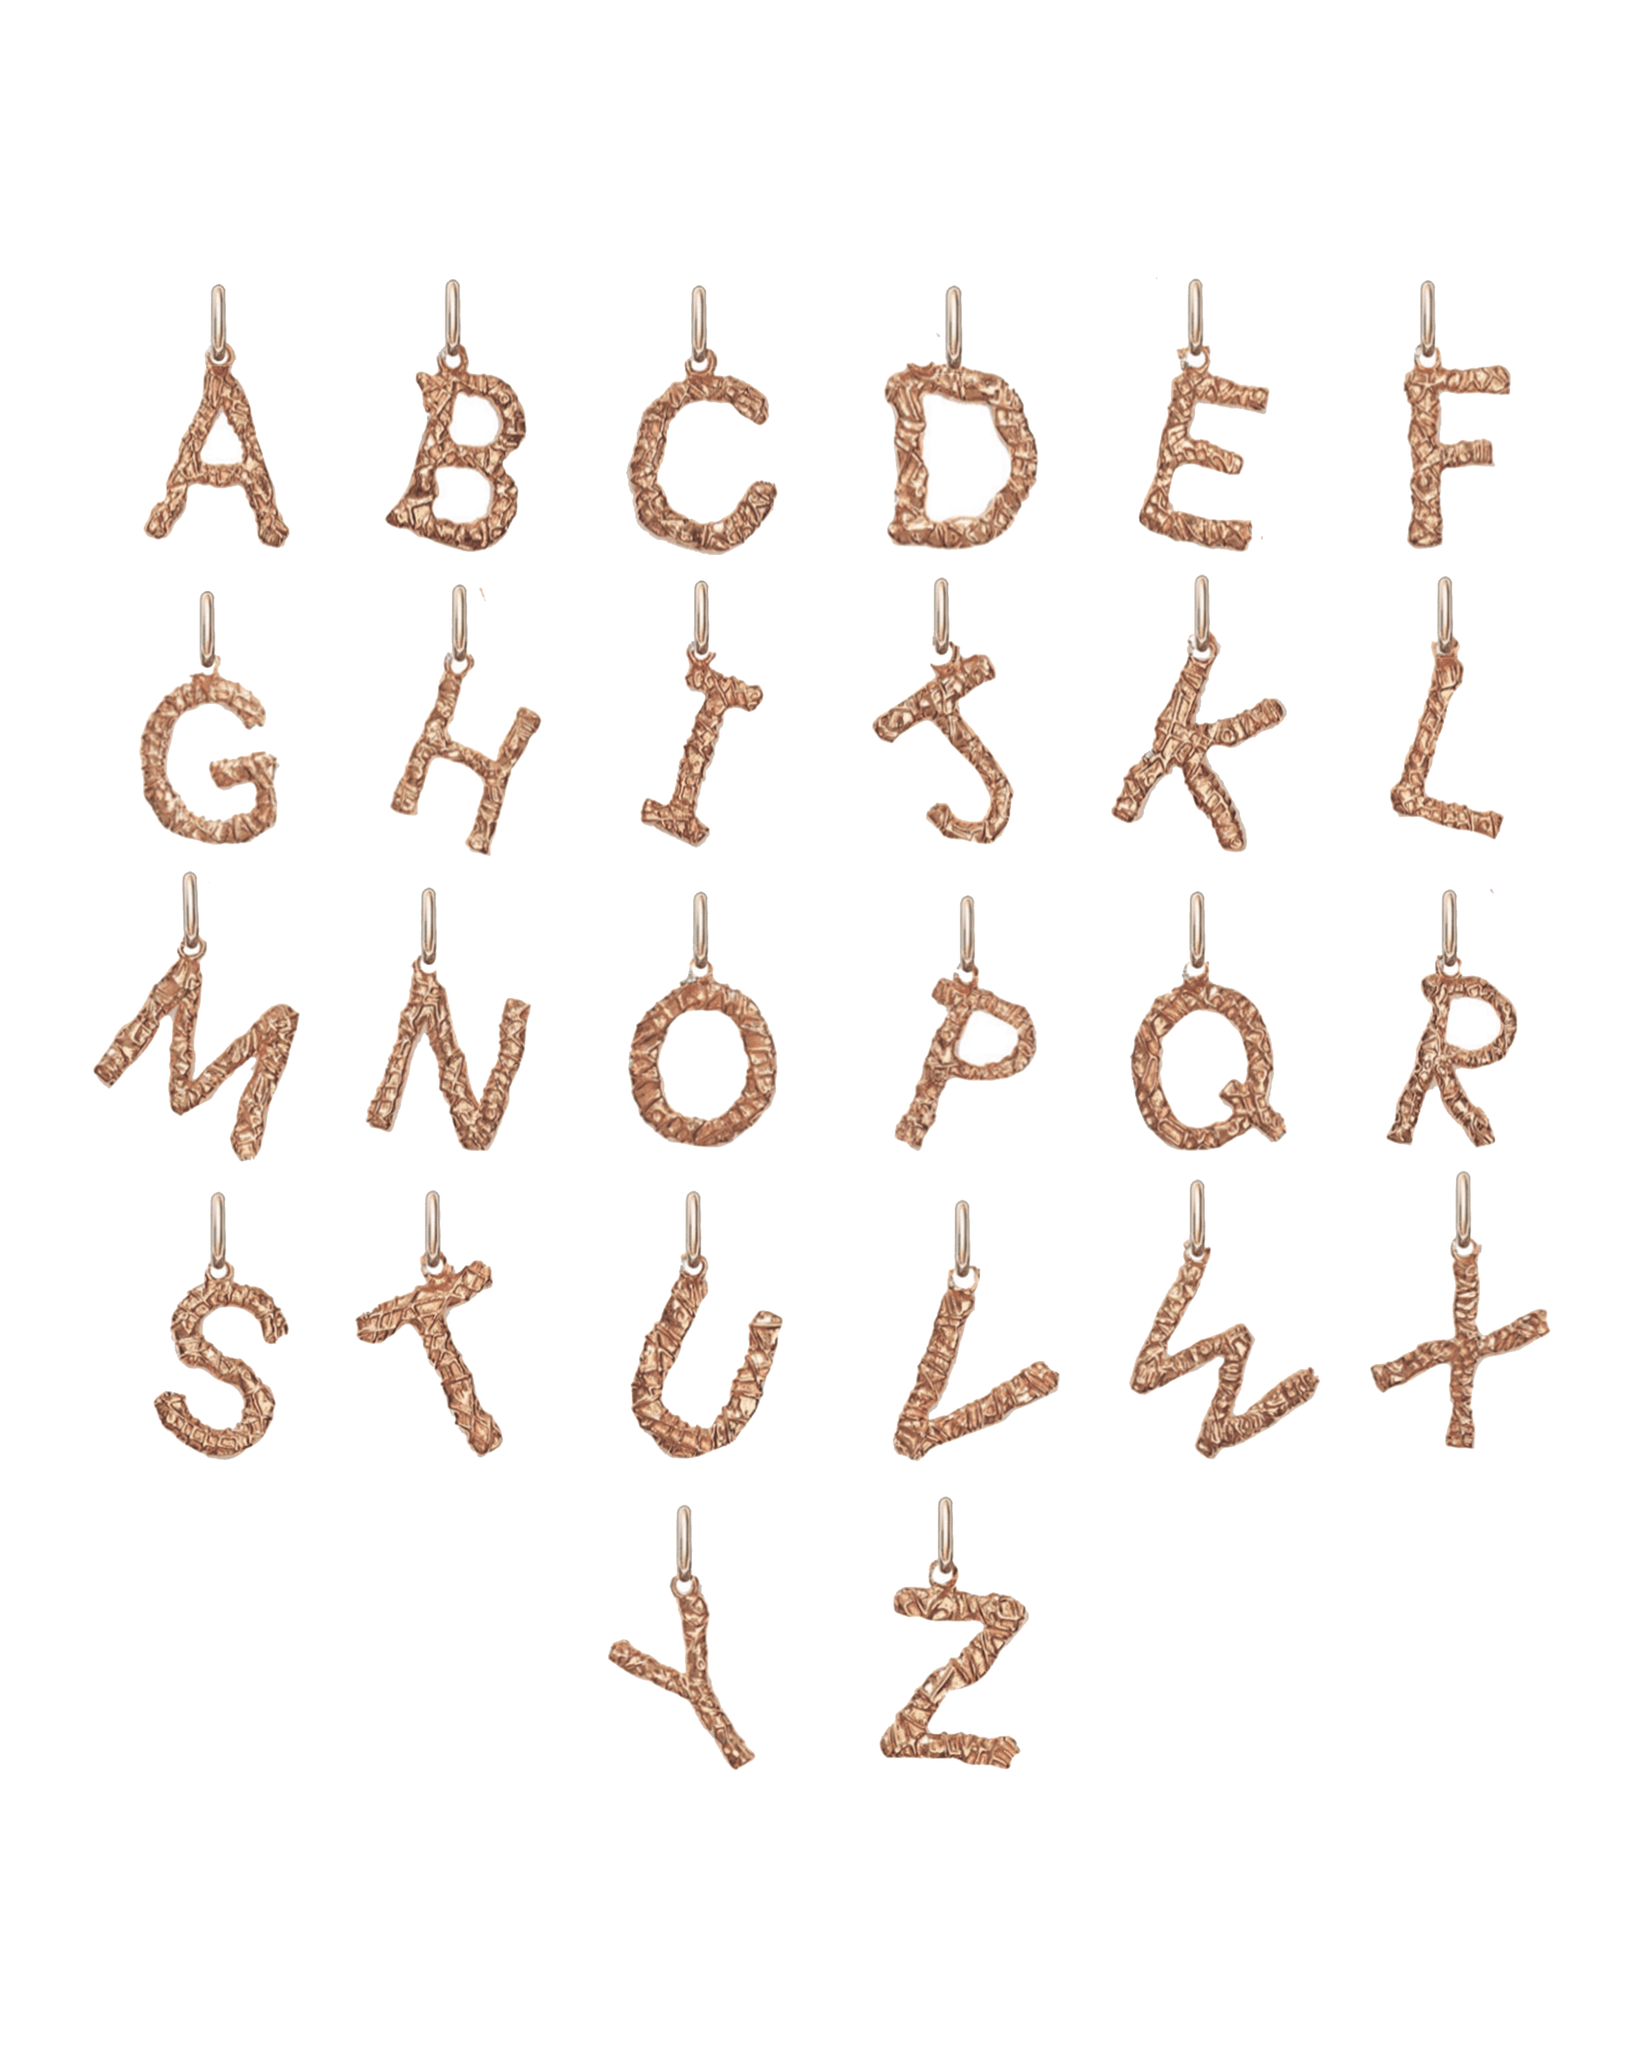 Foil Letter & Heart Square Link Chain Layered Set (Rose Gold)